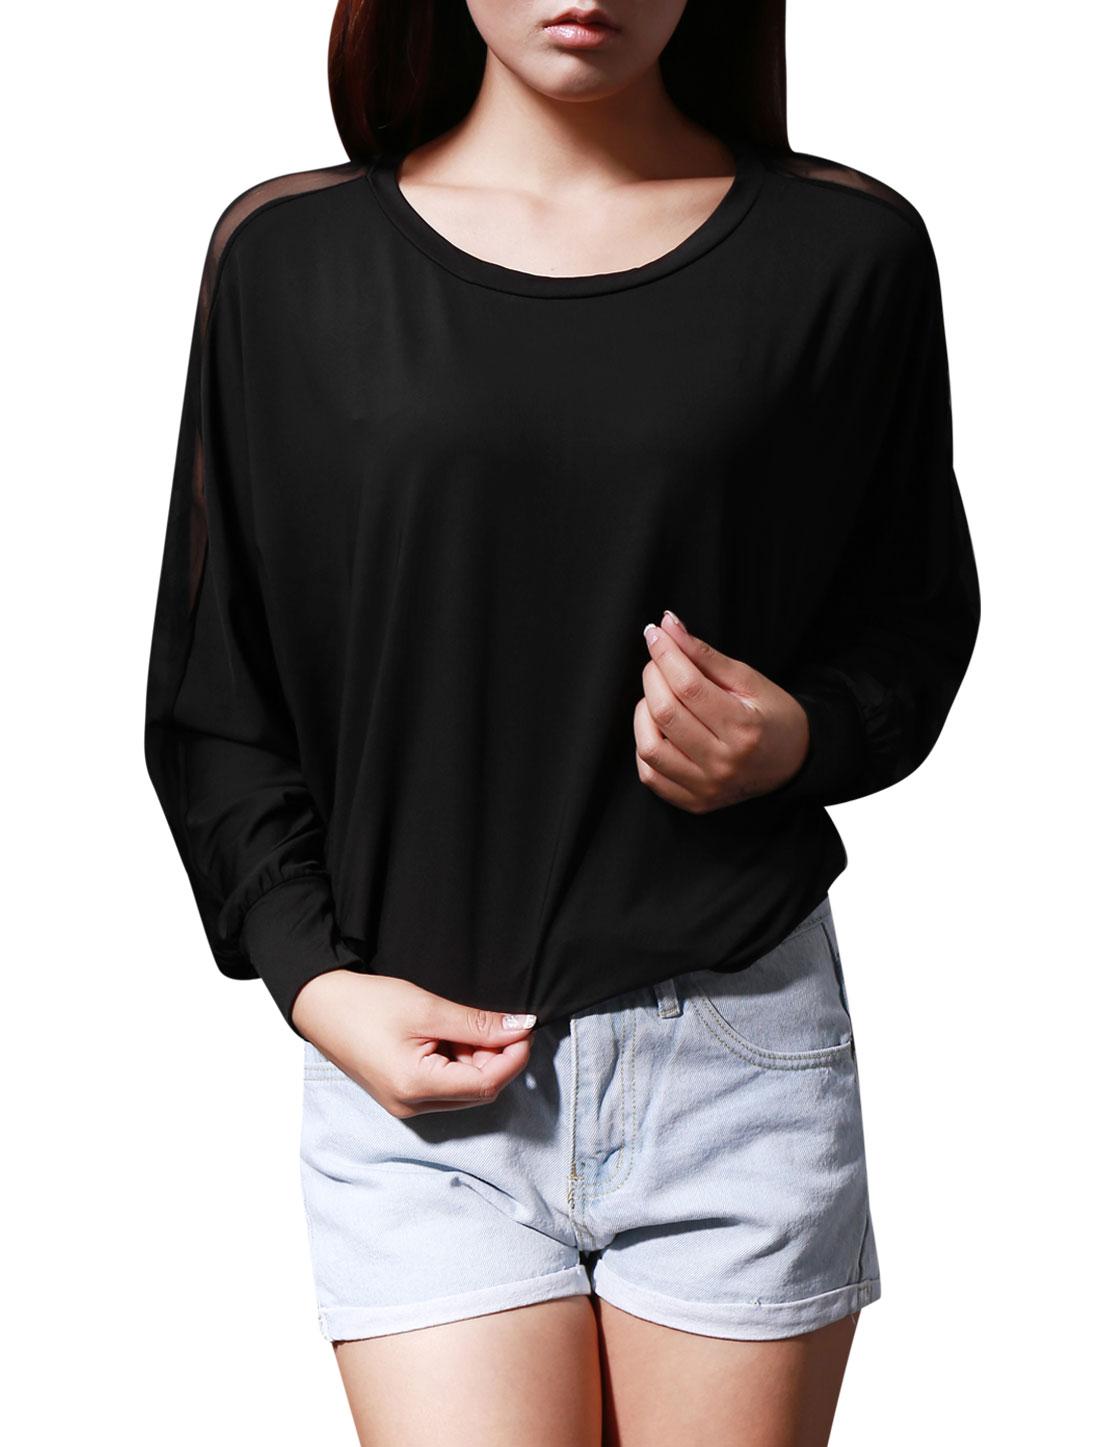 288 M Woman Mesh Patch Long Sleeve Round Neck Shirt Top Black